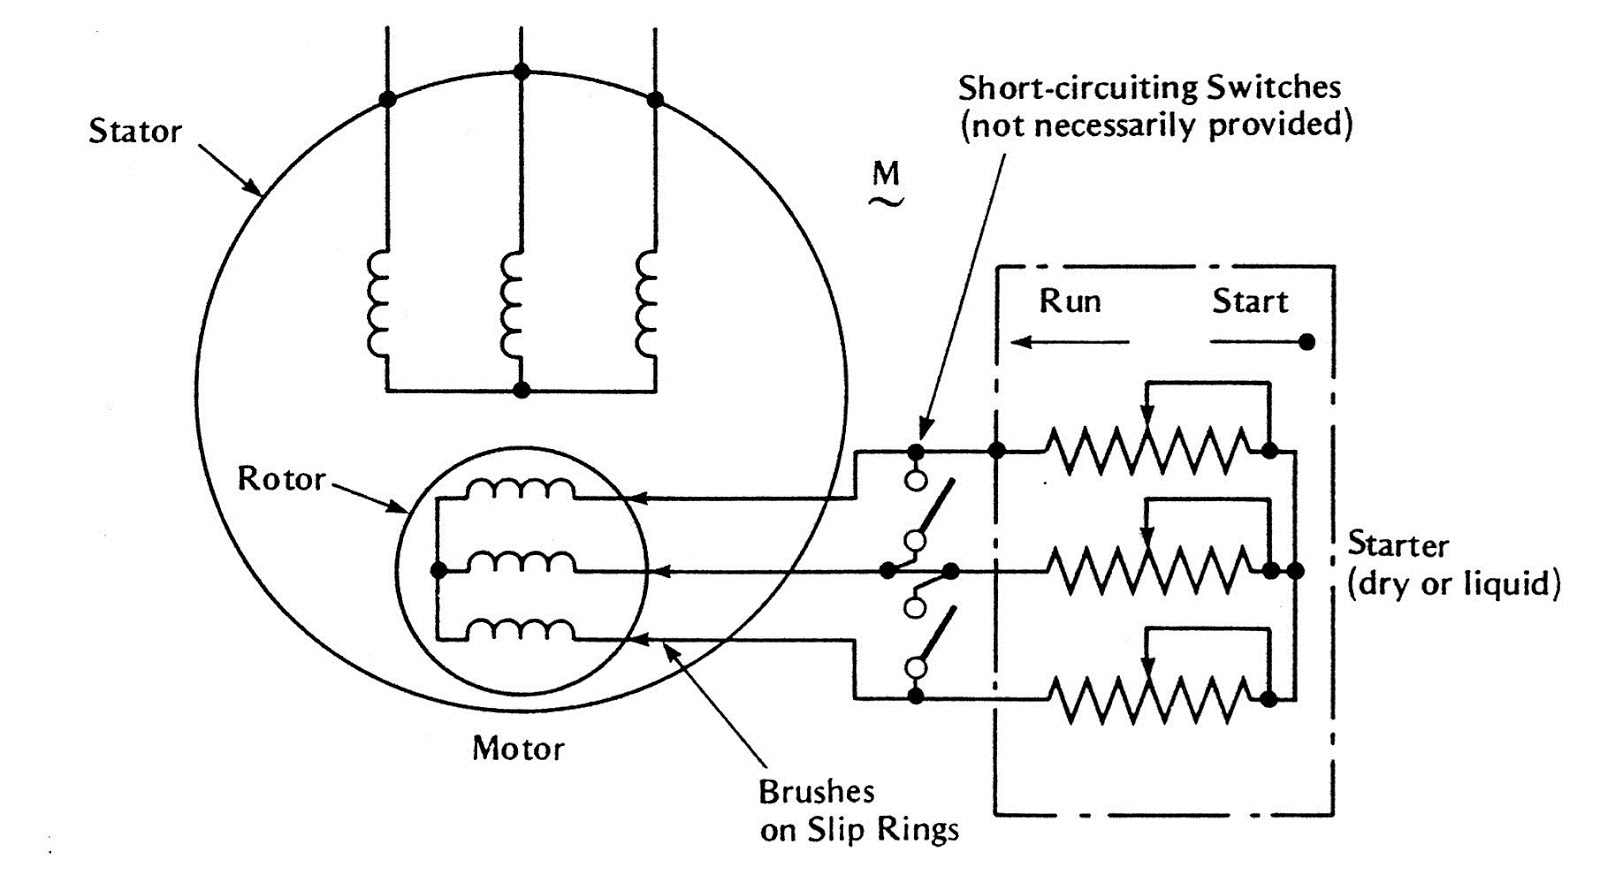 Engineering Photosvideos And Articels Search Engine Wiring Diagram For Series Wound Dc Motor 22 The Induction